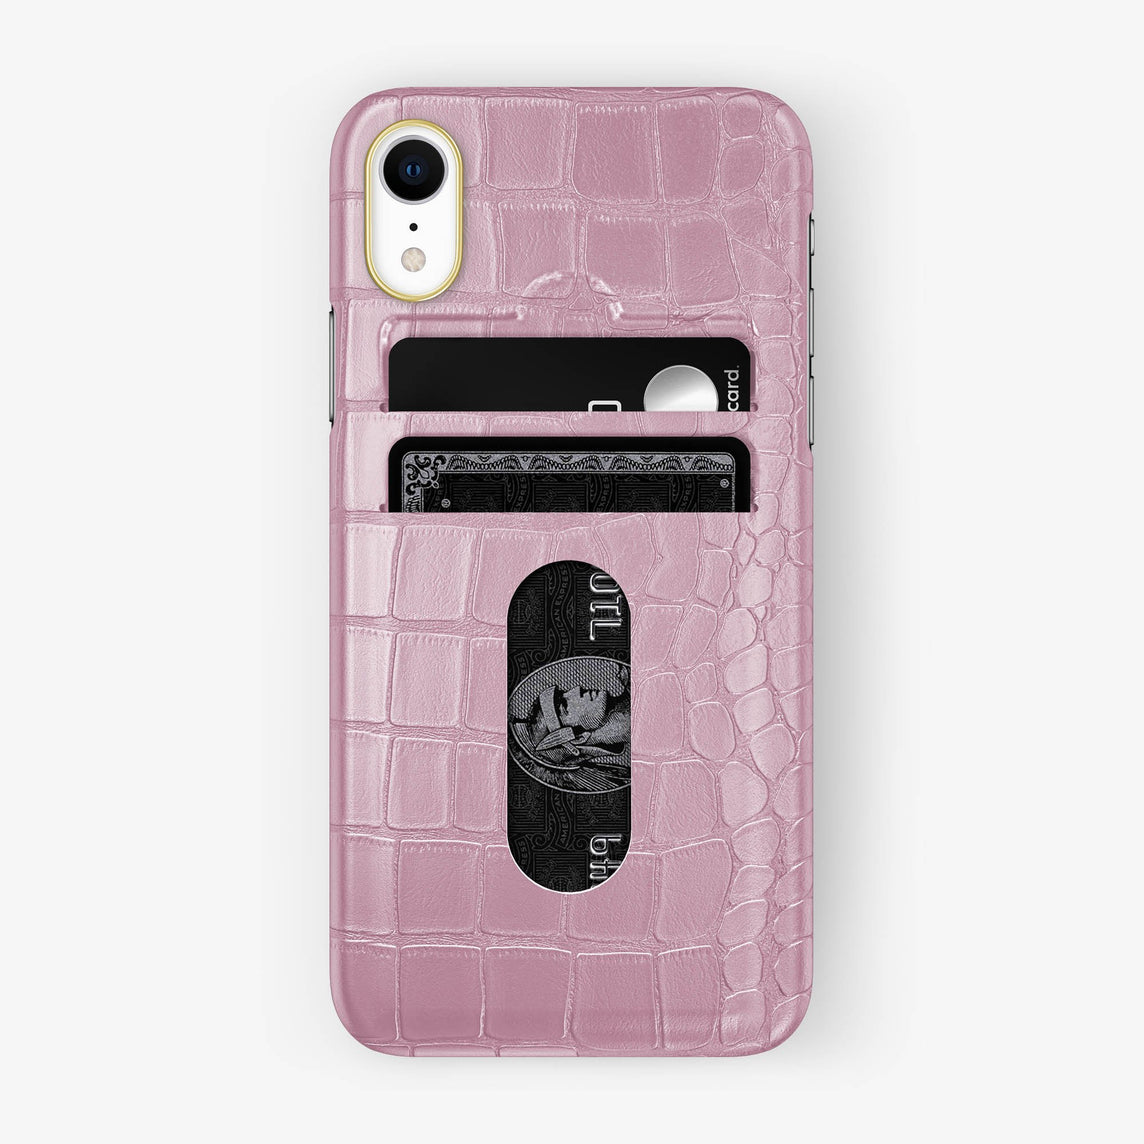 Alligator [iPhone Card Holder Case] [model:iphone-xr-case] [colour:pink] [finishing:yellow-gold]